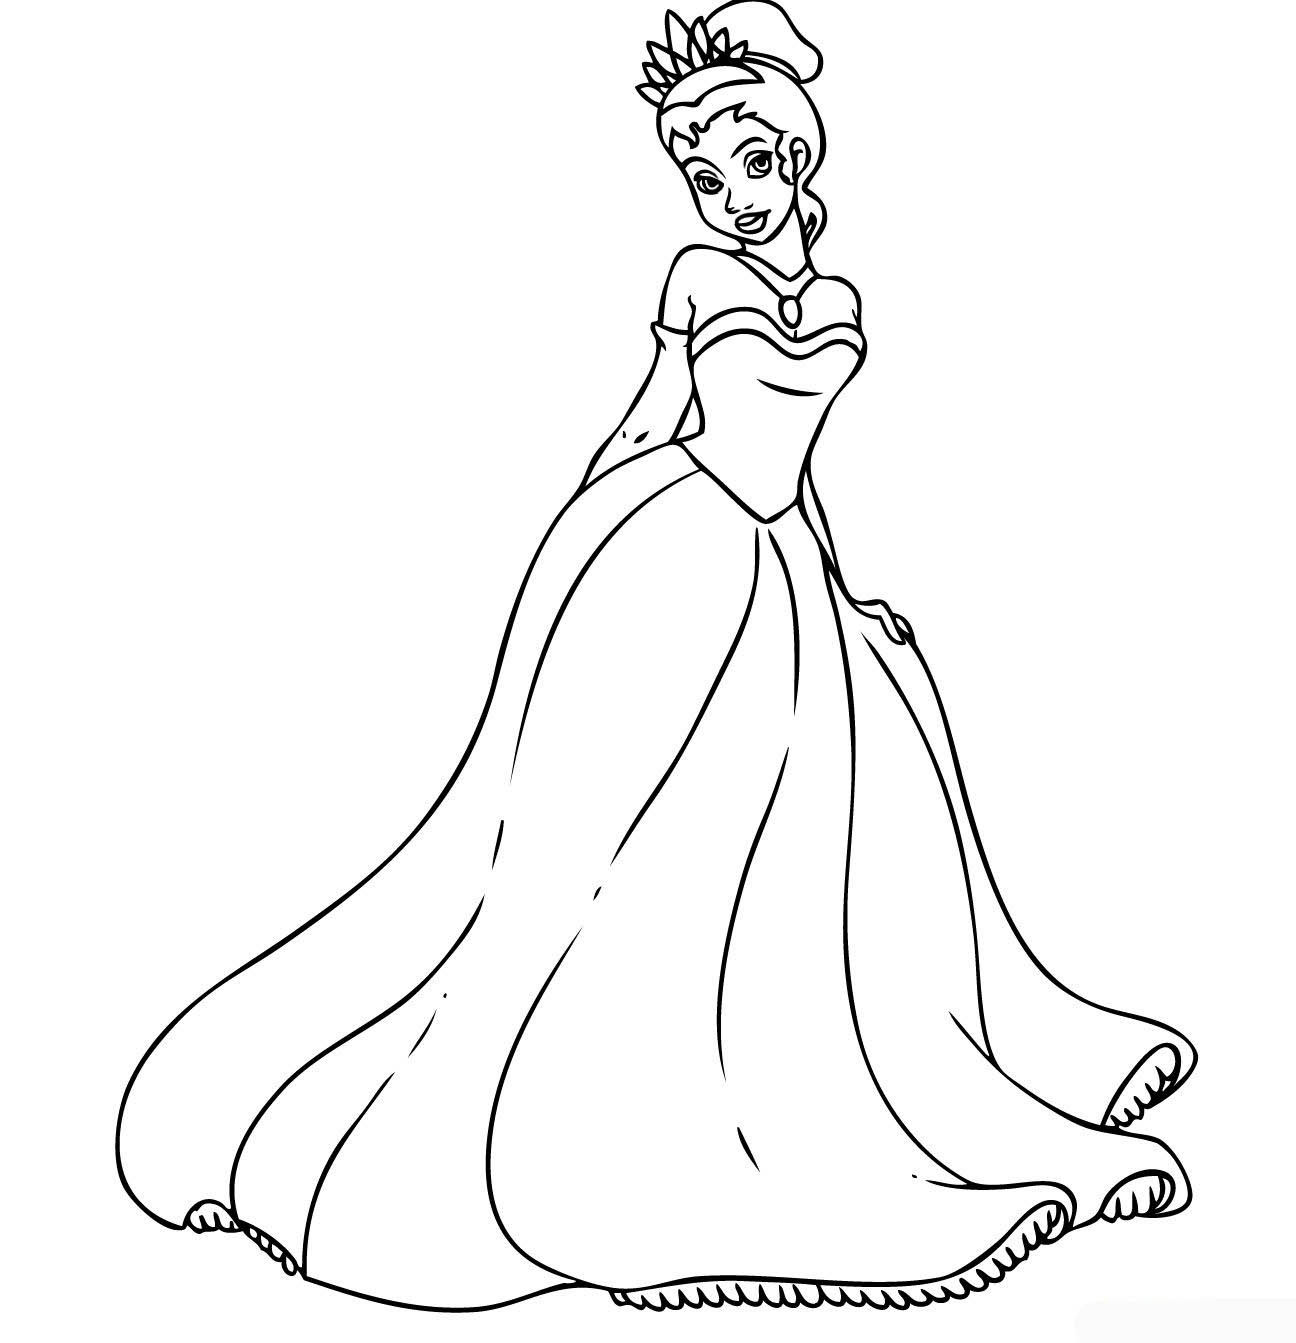 Coloring Pages For Girls Princess  princess coloring pages for girls Free